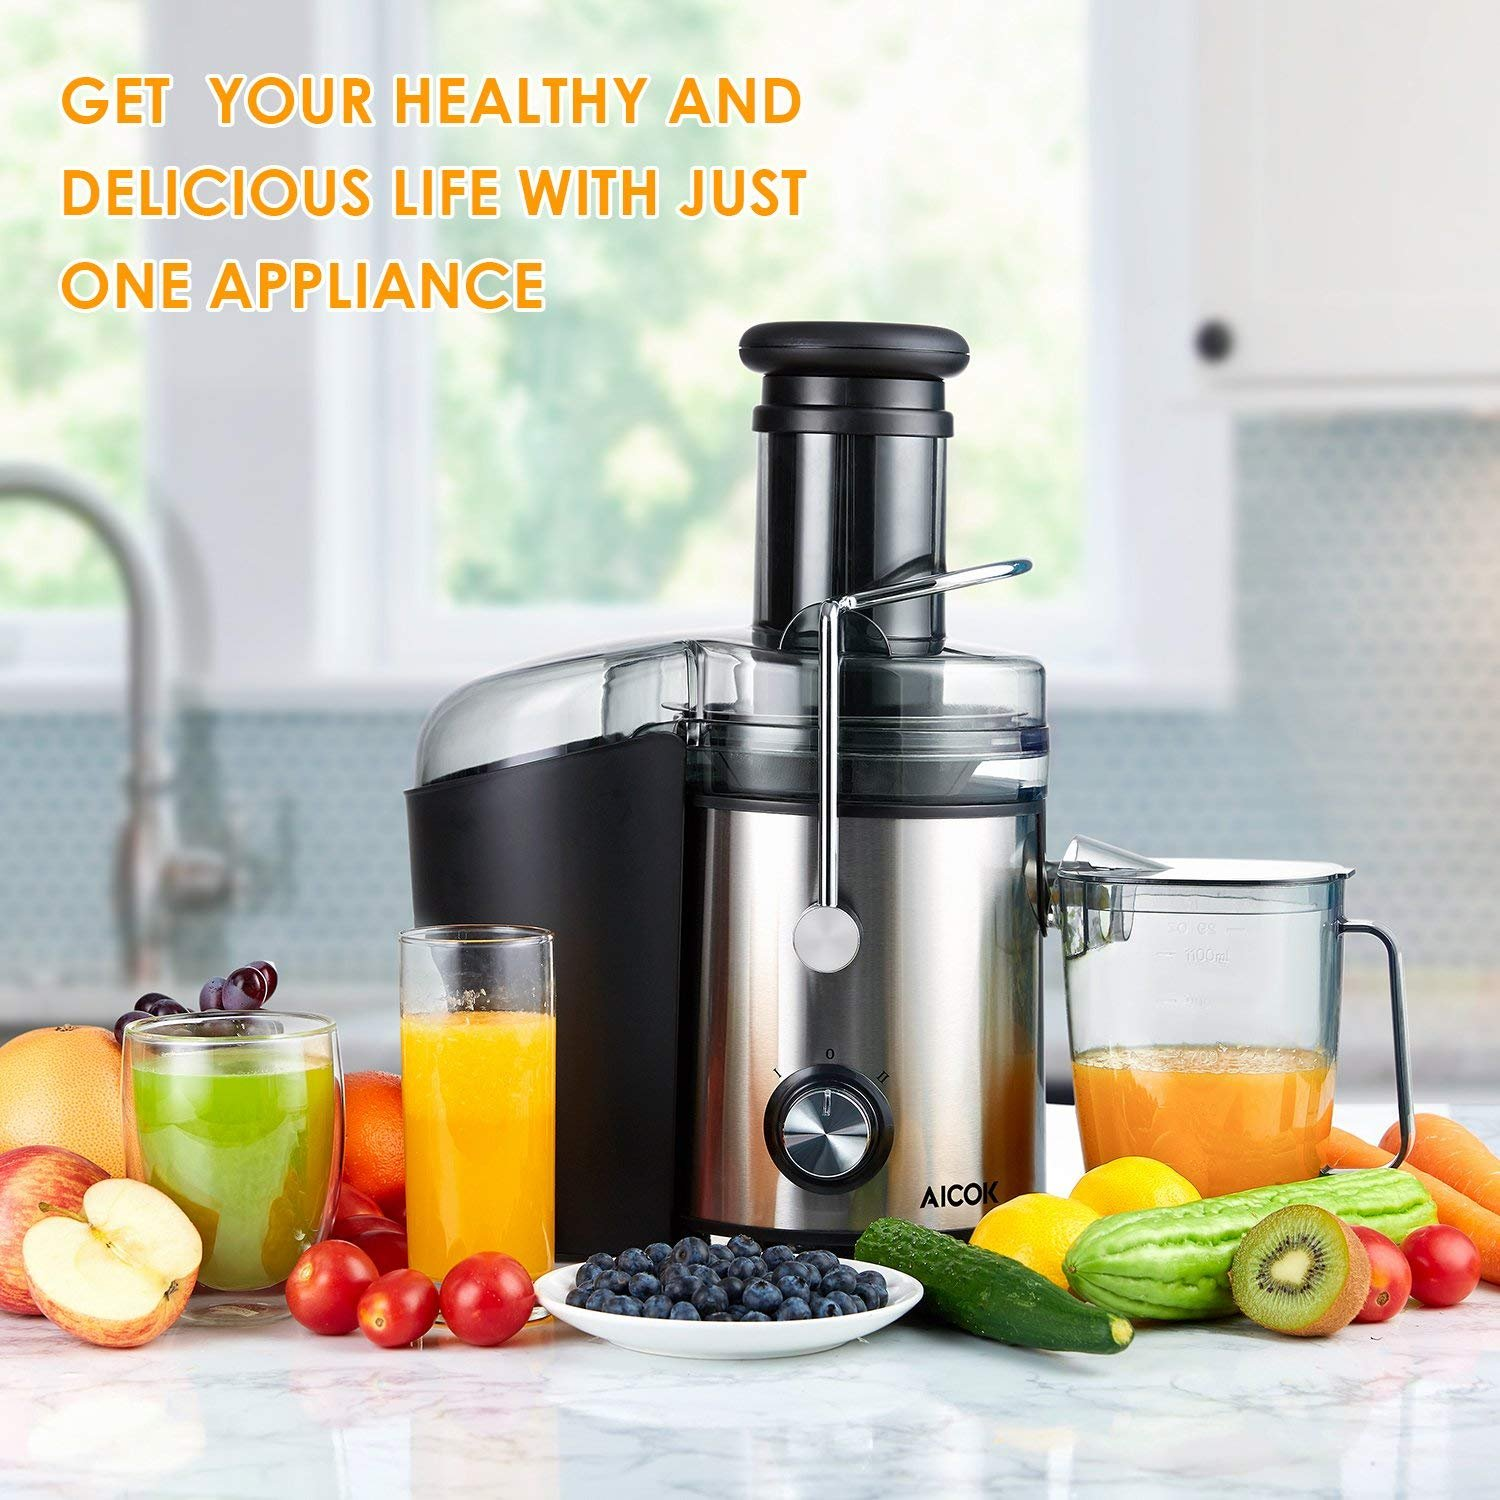 Juicer 1000W Powerful Juice Extractor, Aicok 76MM Wide Mouth Centrifugal Juicer Machine for Whole Fruit and Vegetable, Dual Speed Setting, Anti-drip Function, BPA Free by AICOK (Image #7)